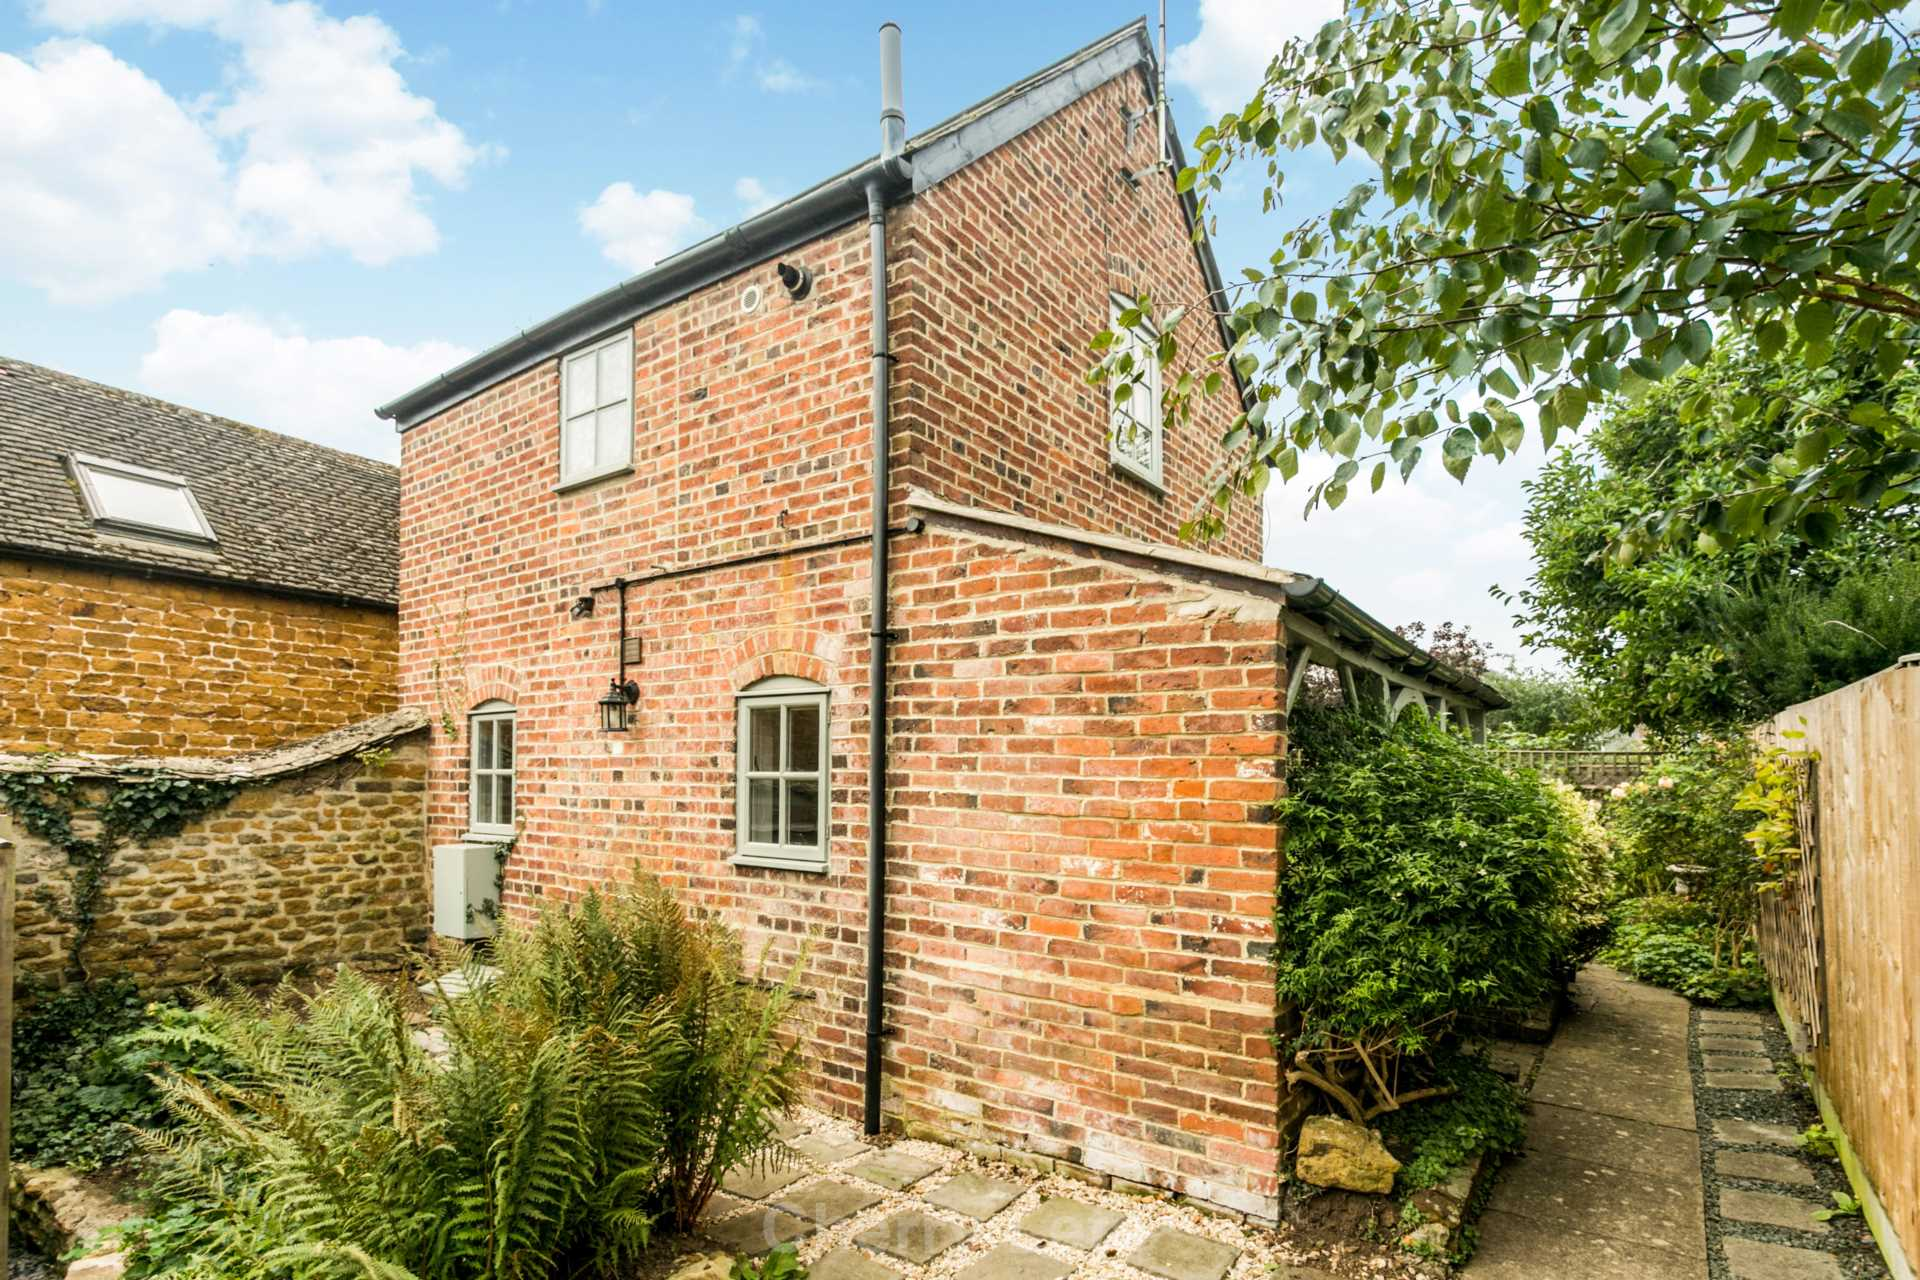 1 bed detached house to rent in The Stile, Deddington, OX15, OX15